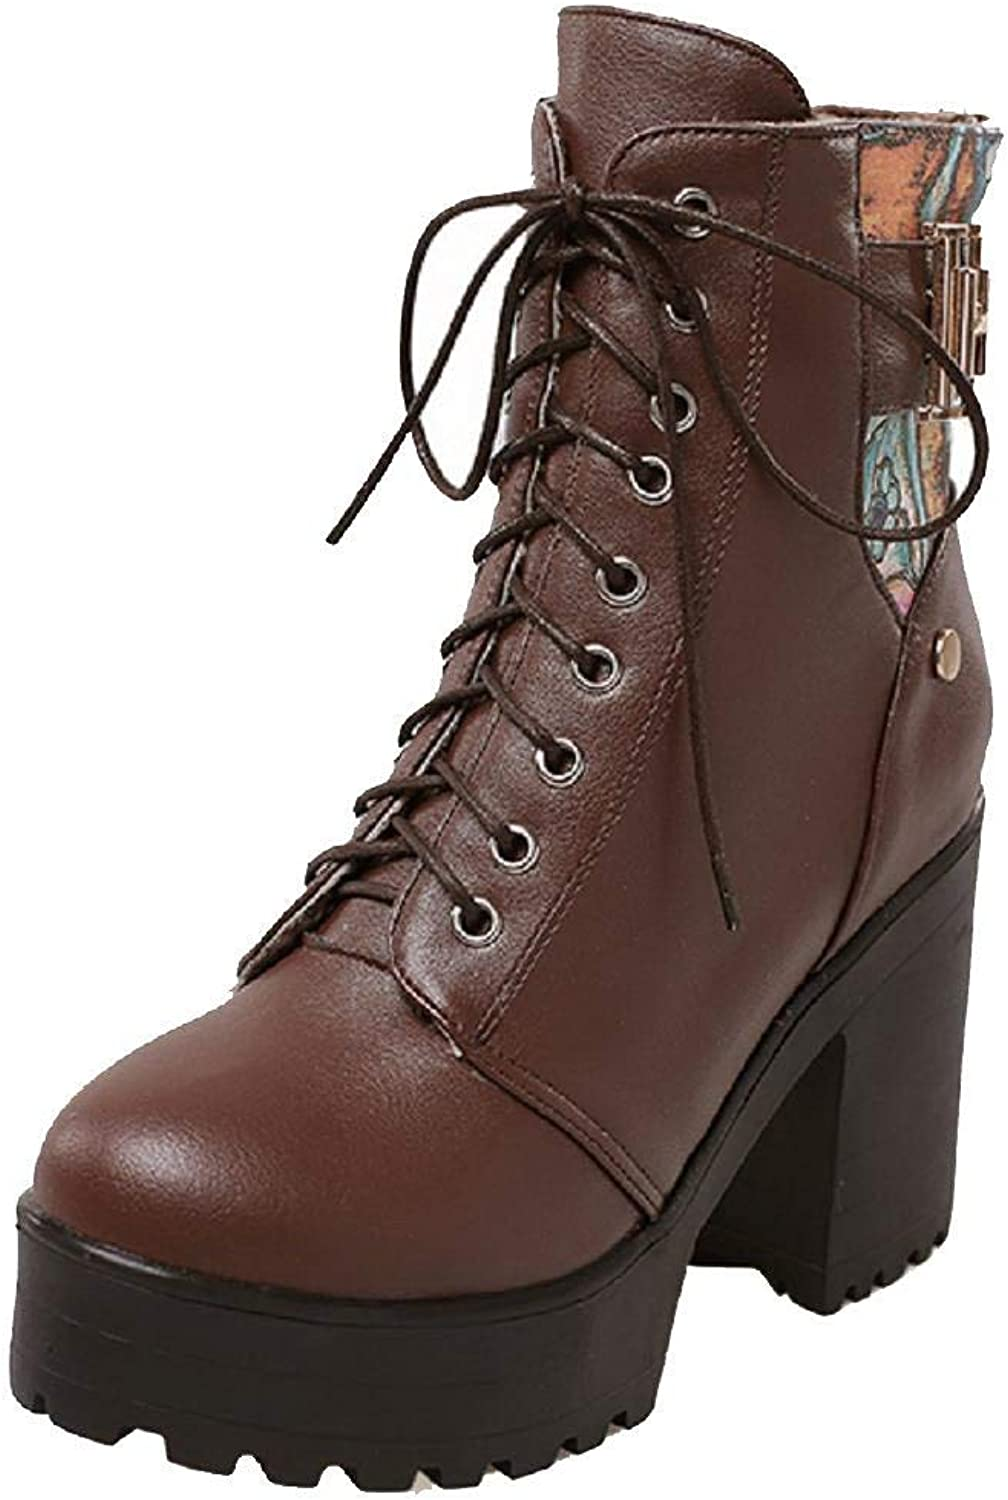 Women's PU Low-top Assorted color Lace-up High-Heels Boots